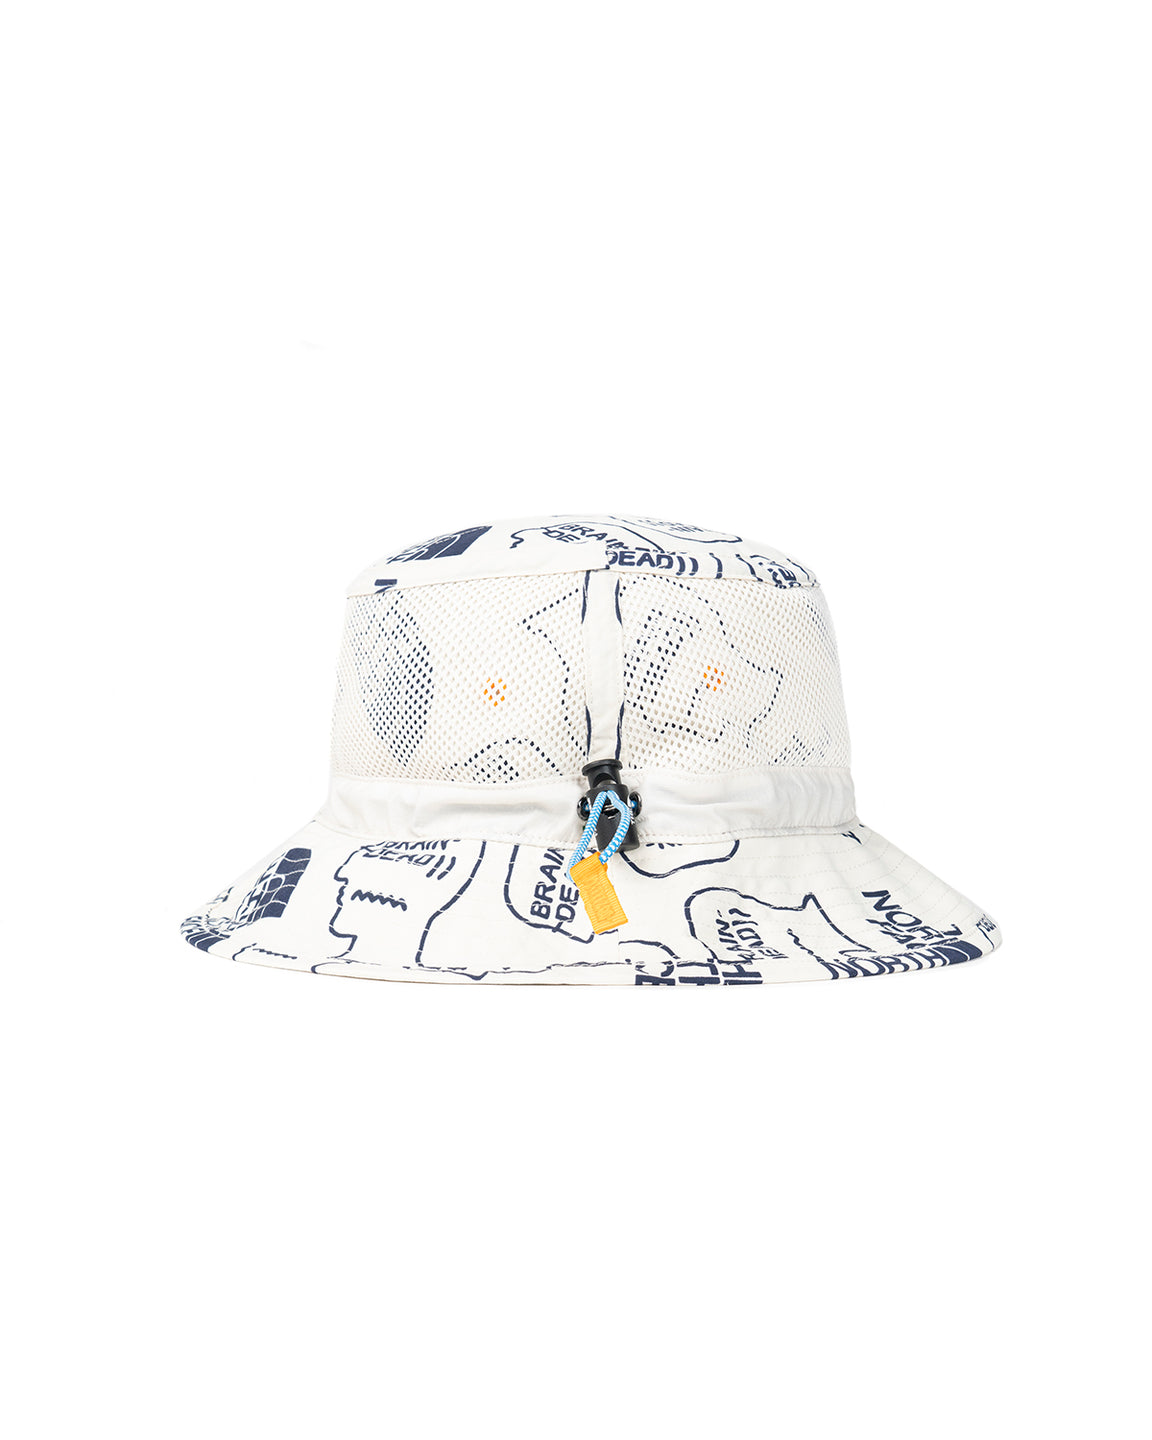 The North Face x Brain Dead Bucket Hat - Vintage White